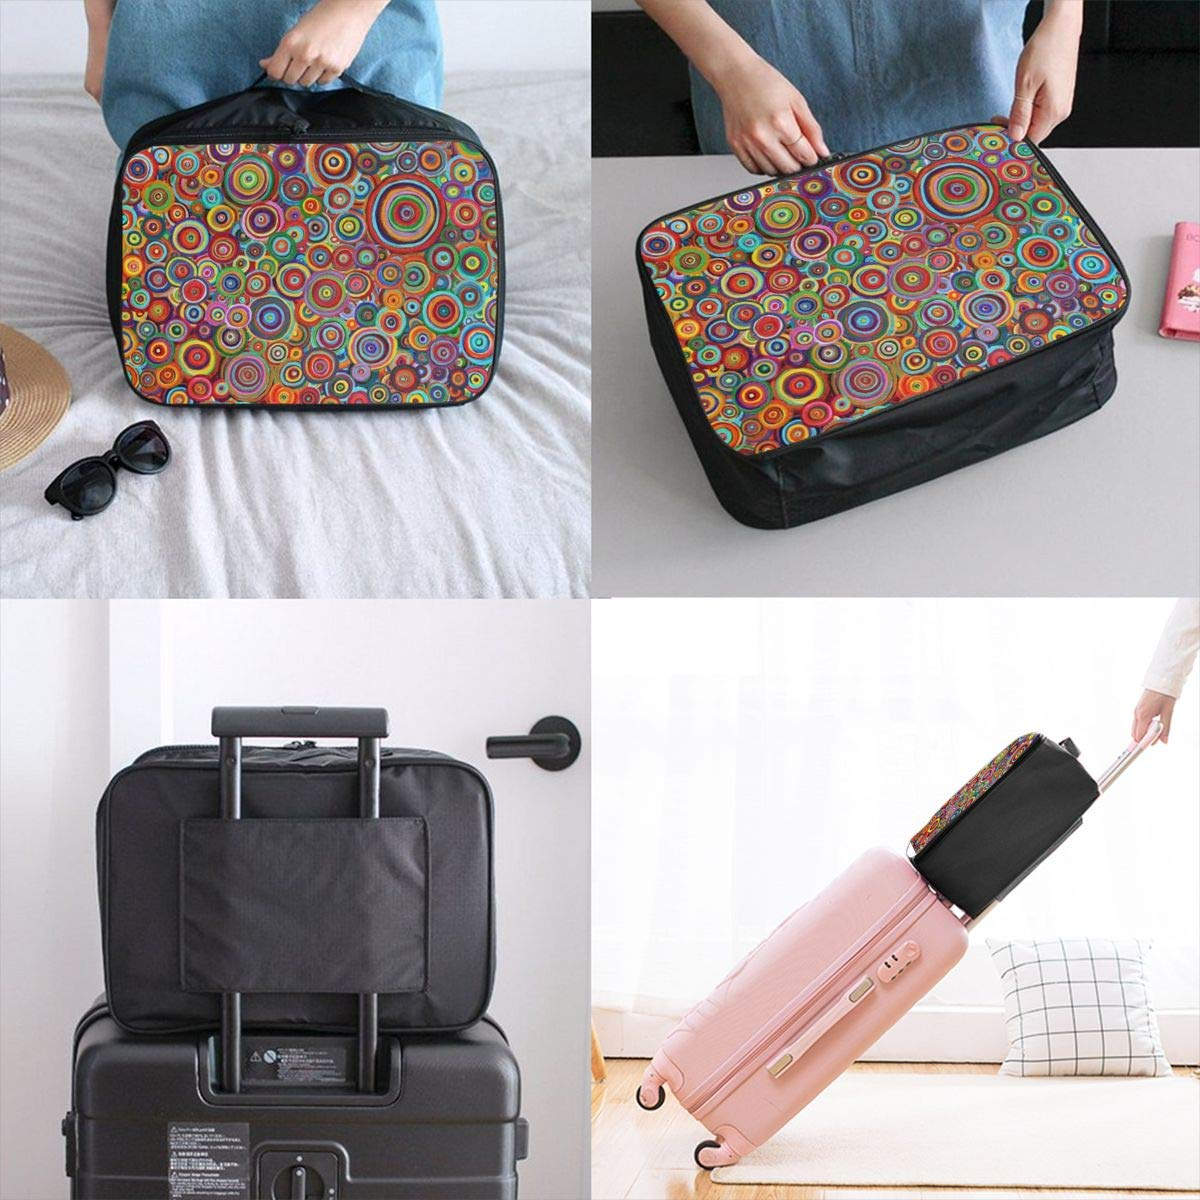 ADGAI Psychedelic Trippy Art Candle Canvas Travel Weekender Bag,Fashion Custom Lightweight Large Capacity Portable Luggage Bag,Suitcase Trolley Bag